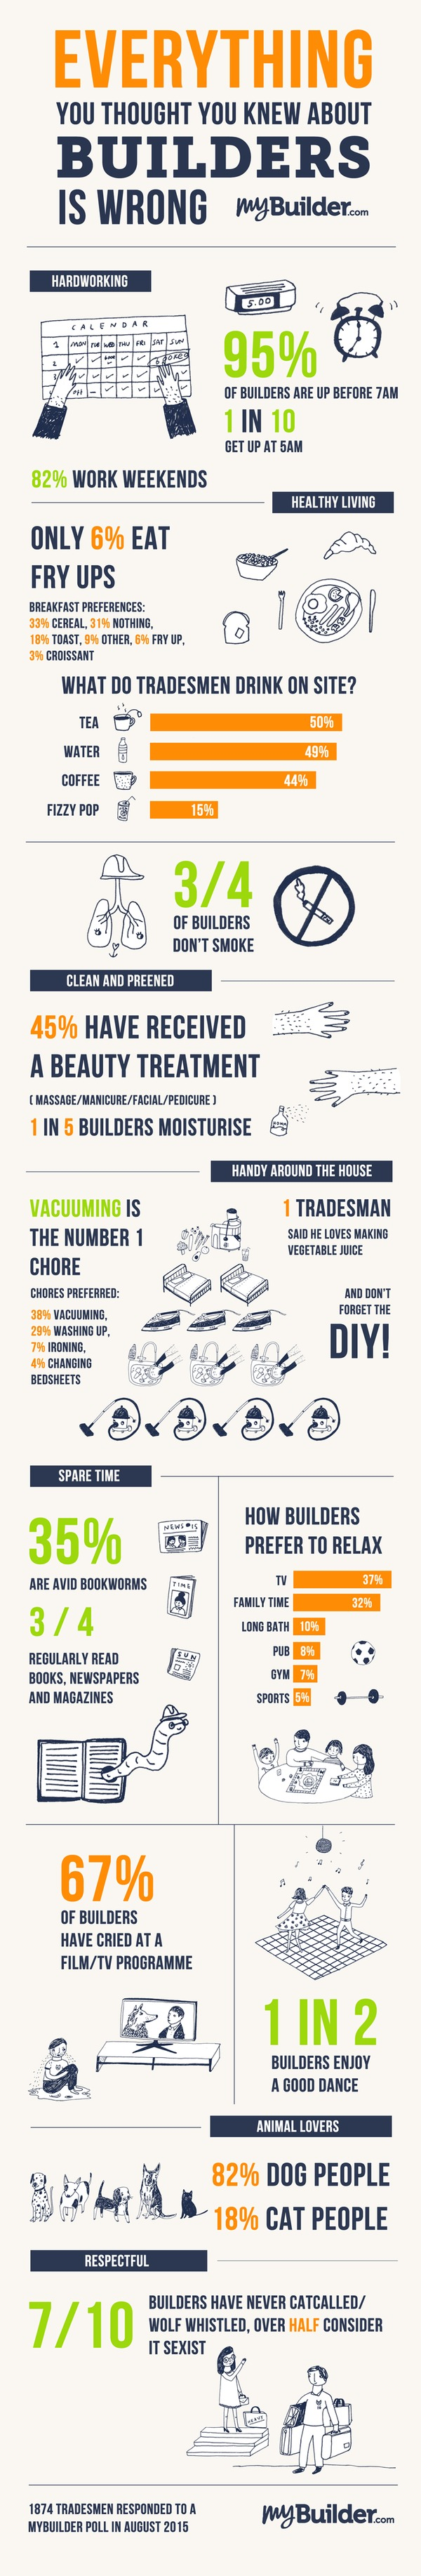 Everything You Thought You Knew About Builders is Wrong